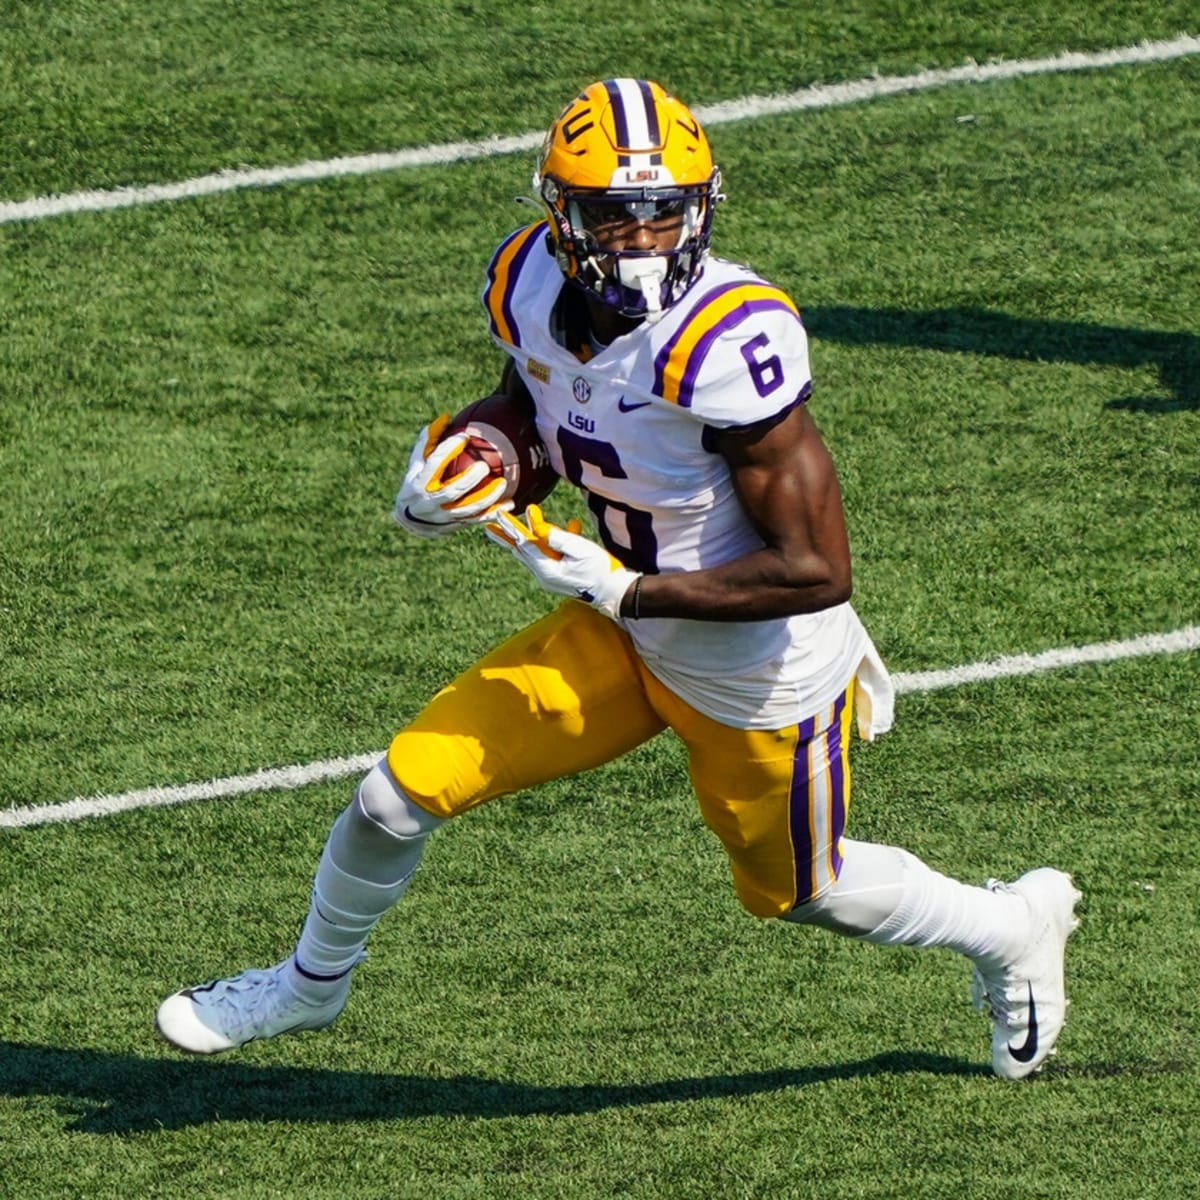 2021 NFL Draft Prospect Profile: WR Terrace Marshall, Jr, LSU - Sports  Illustrated New York Giants News, Analysis and More